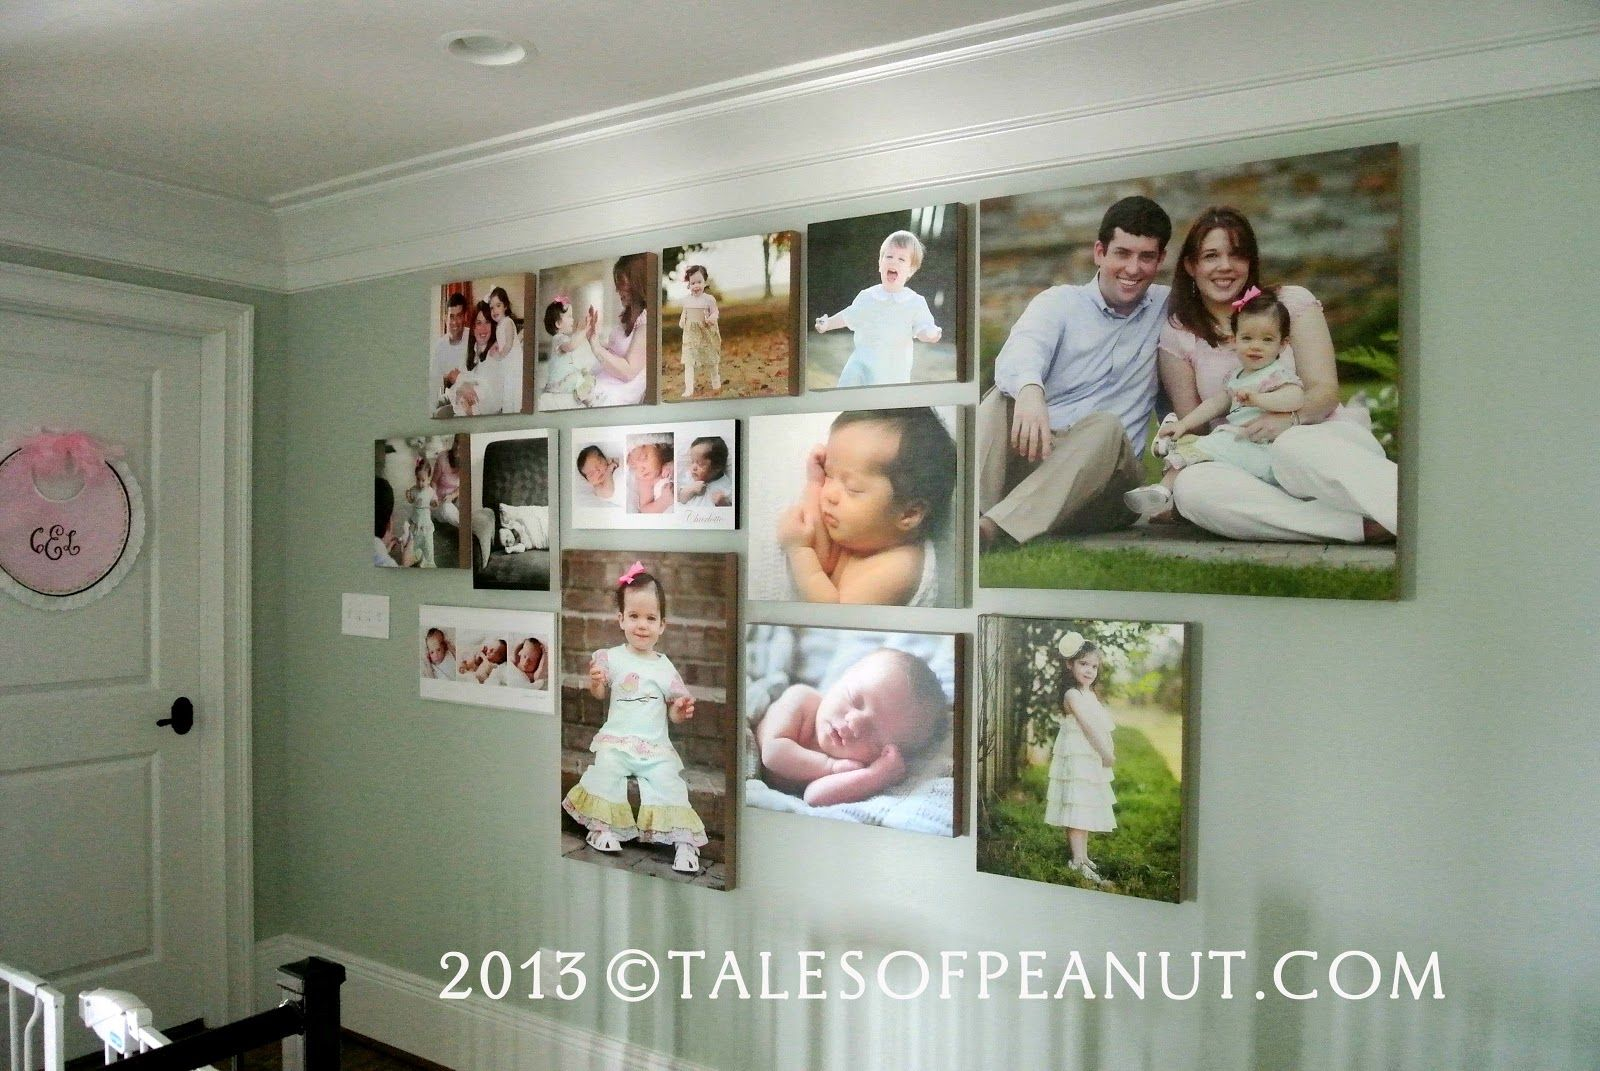 Displaying Photos of Your Children